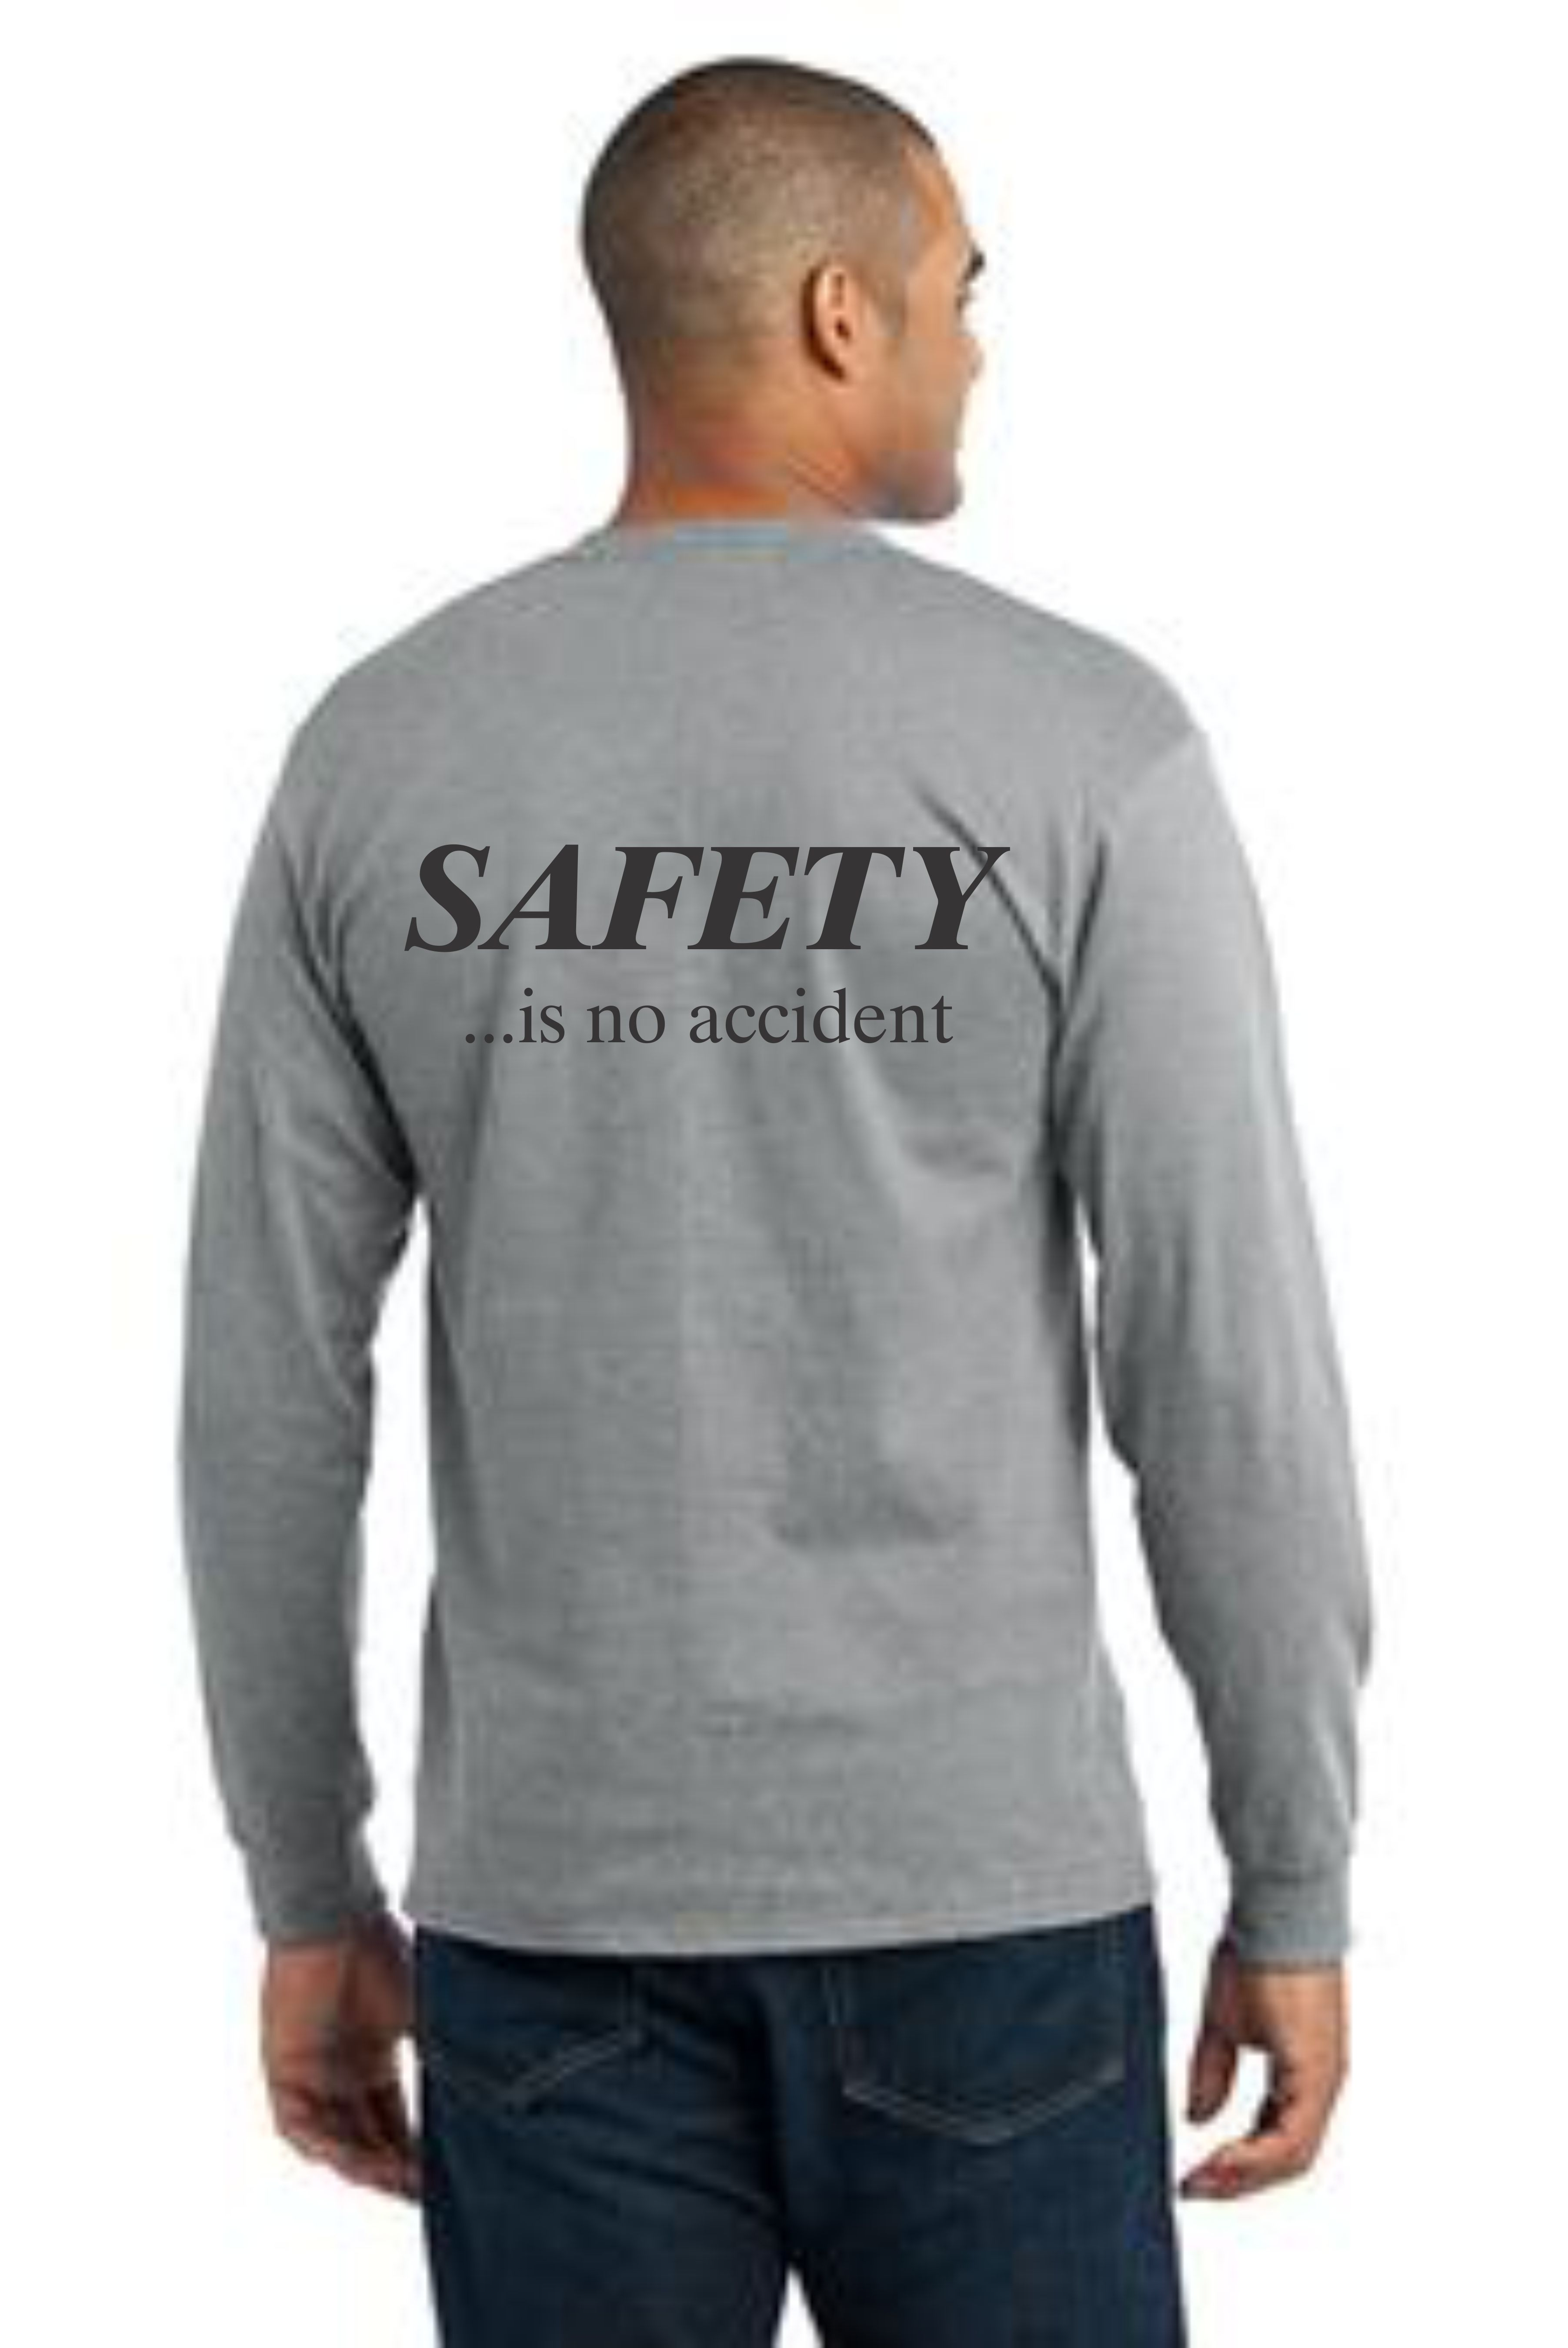 LONG SLEEVE SAFETY T-SHIRT -- SAFETY... IS NO ACCIDENT